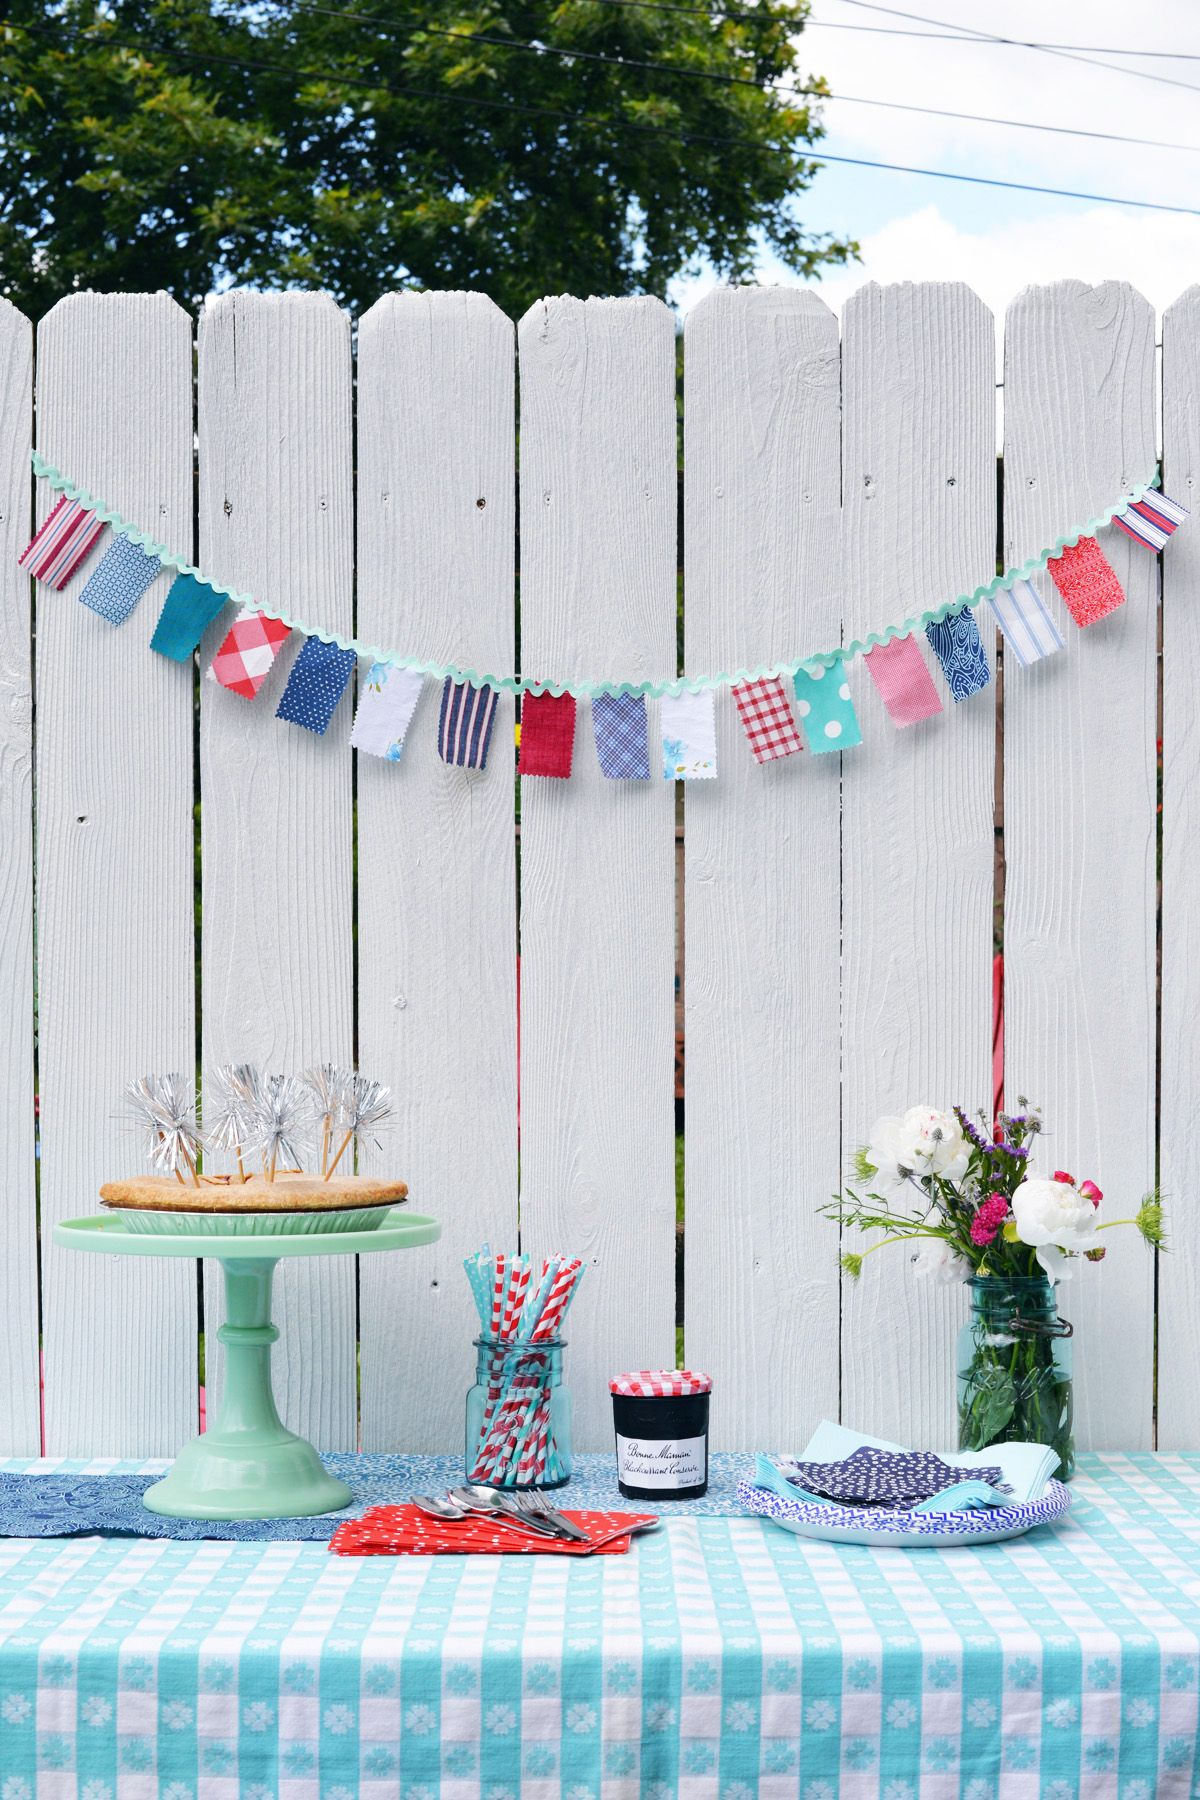 1561710202 409 4th of july decoration ideas that can transform your home in a moment - 4th of July Decoration Ideas That Can Transform Your Home In A Moment